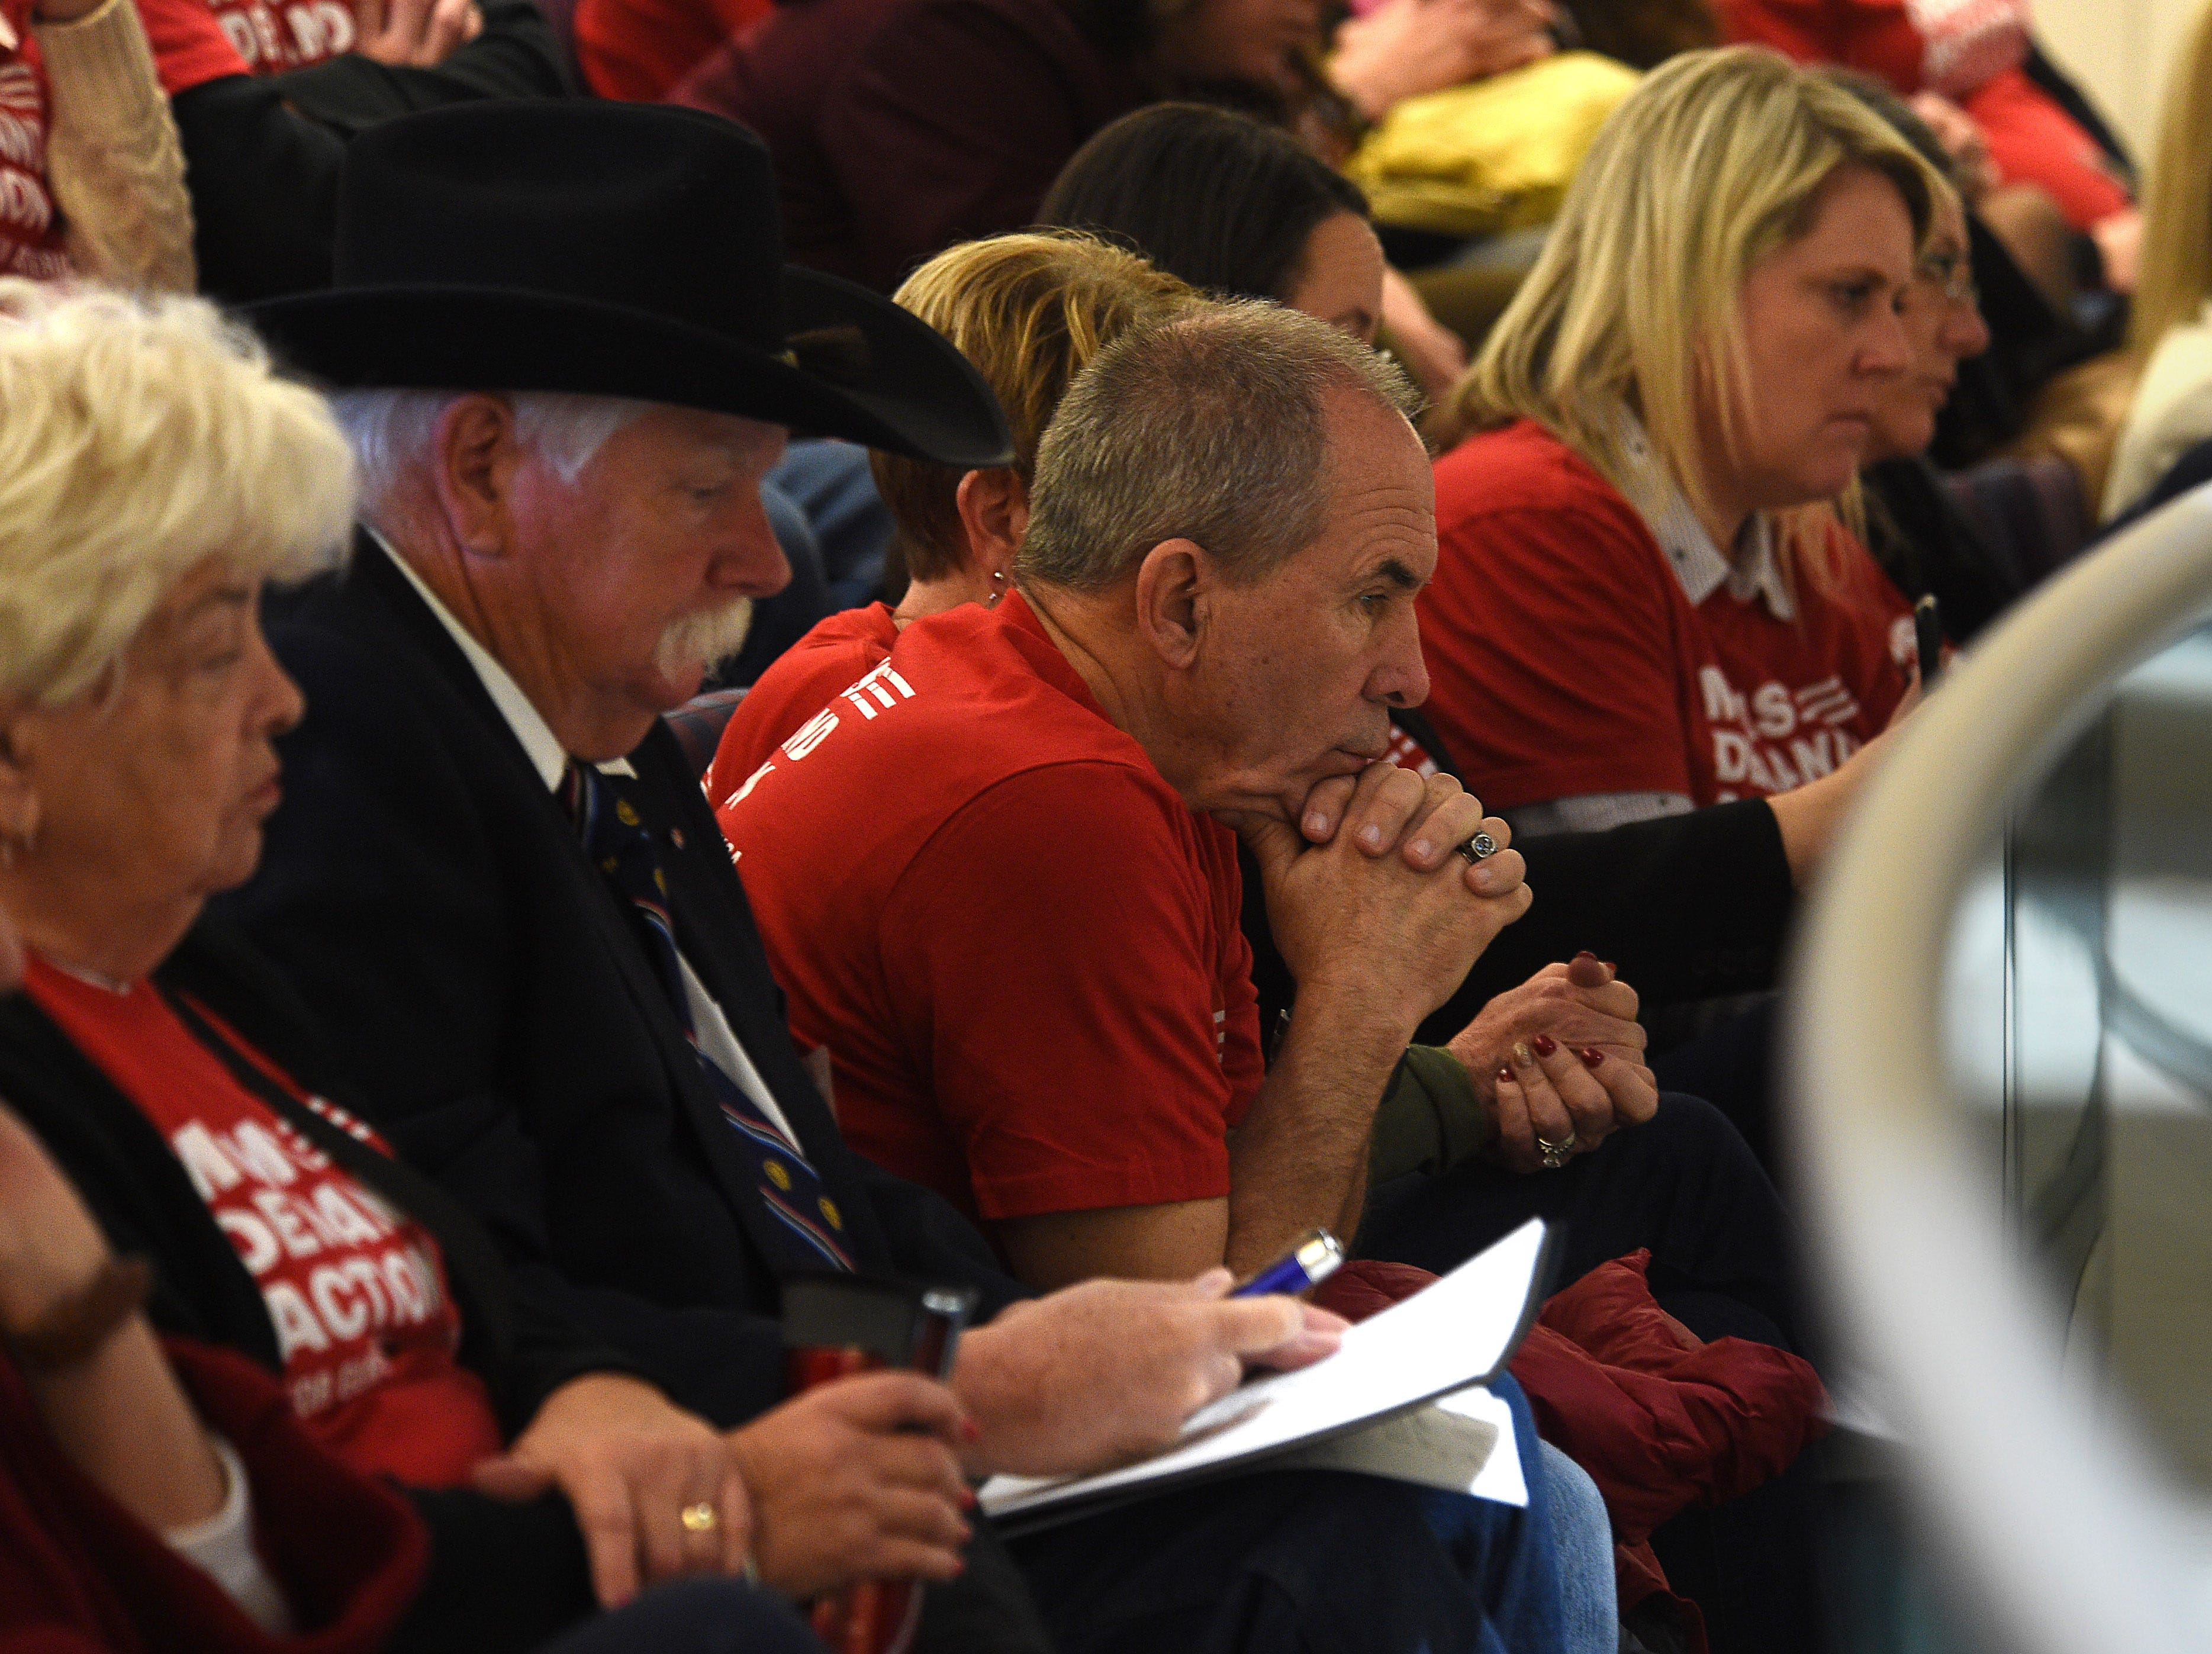 Members of a Nevada chapter of Moms Demand Action attend a hearing for Senate Bill 143 at the Nevada Legislature Building in Carson City on Feb. 12, 2019.